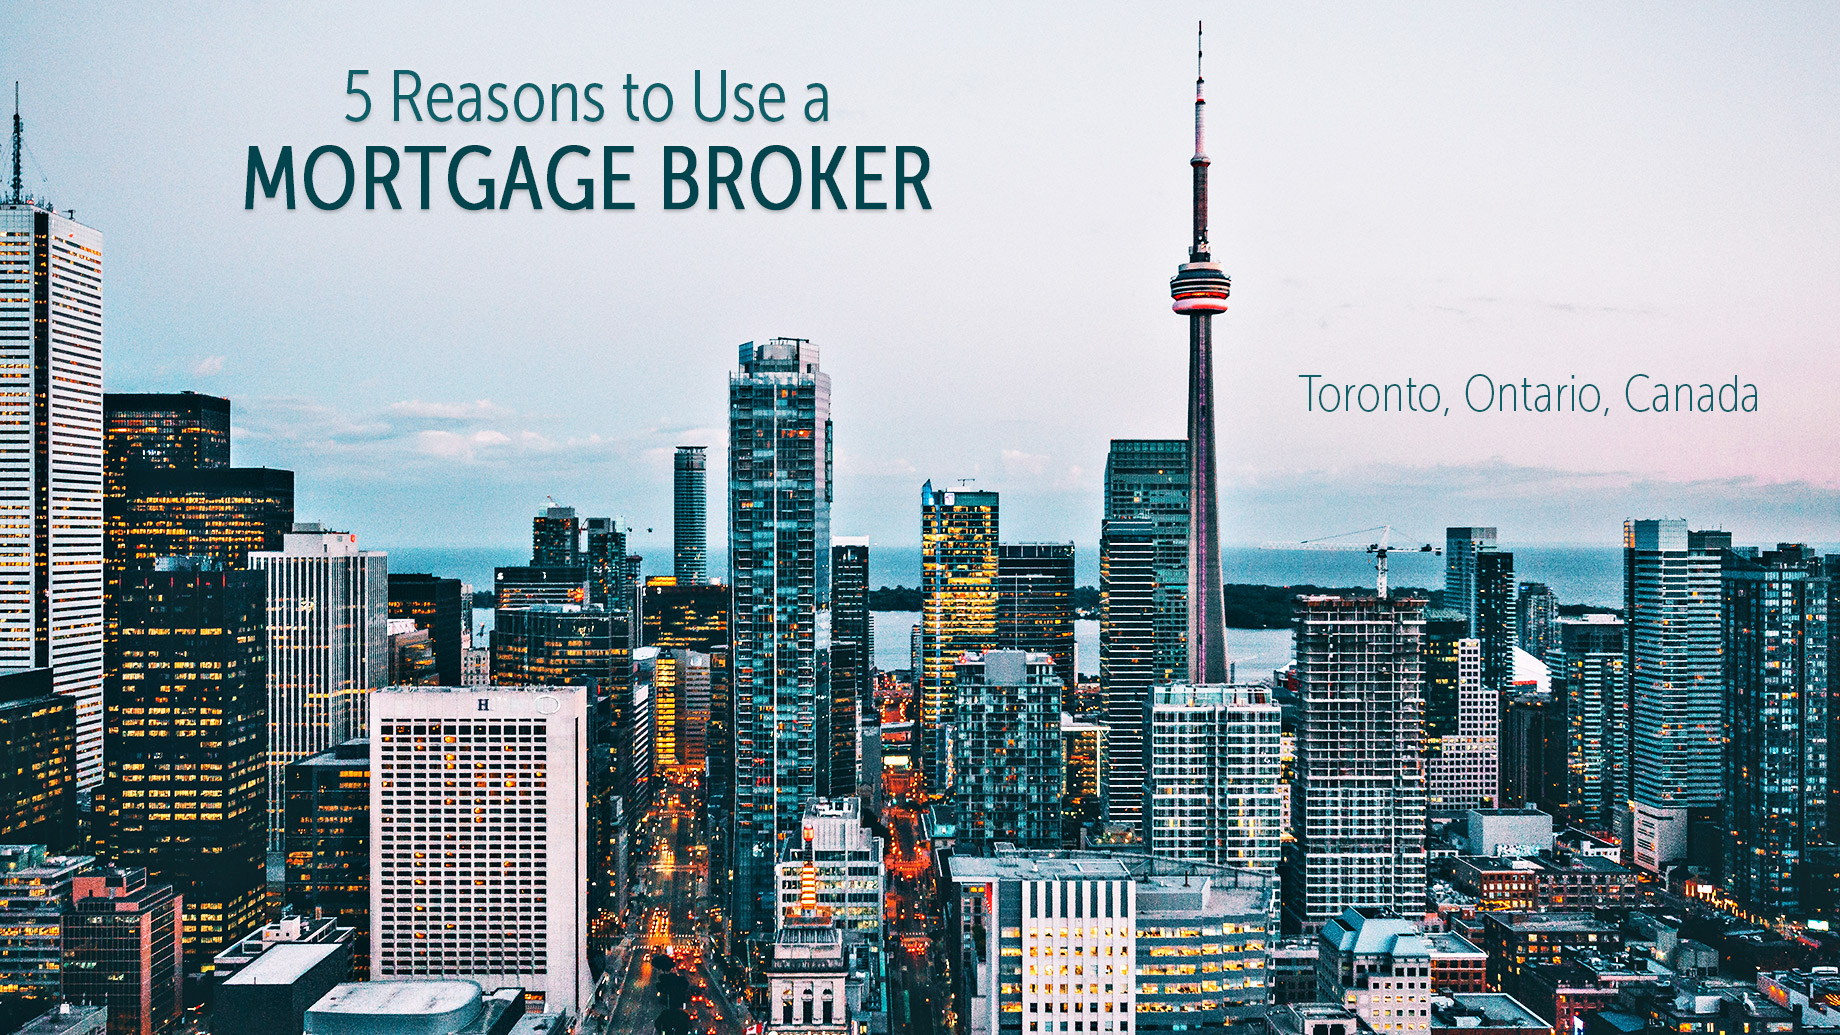 5 Reasons to Use a Mortgage Broker in Toronto, Ontario, Canada